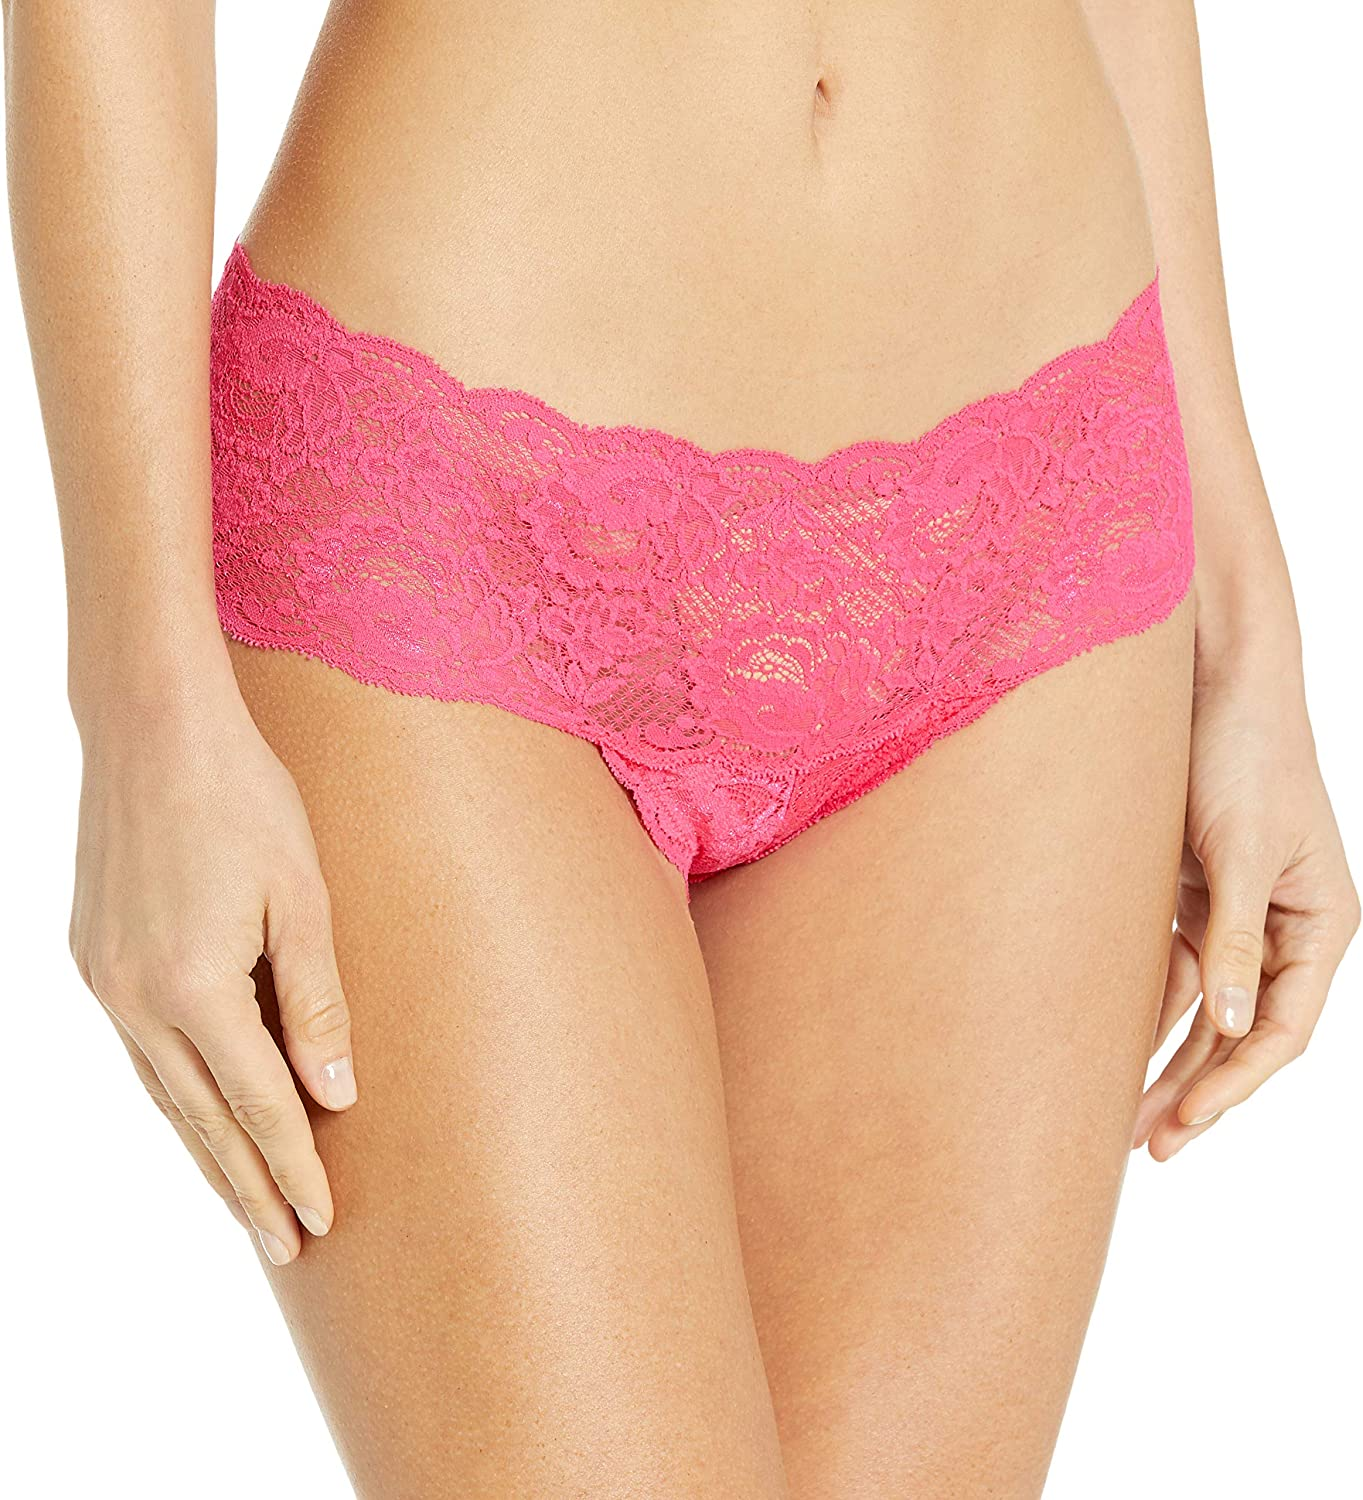 Cosabella Women's Say Never Hottie Lowrider Hotpant Panty